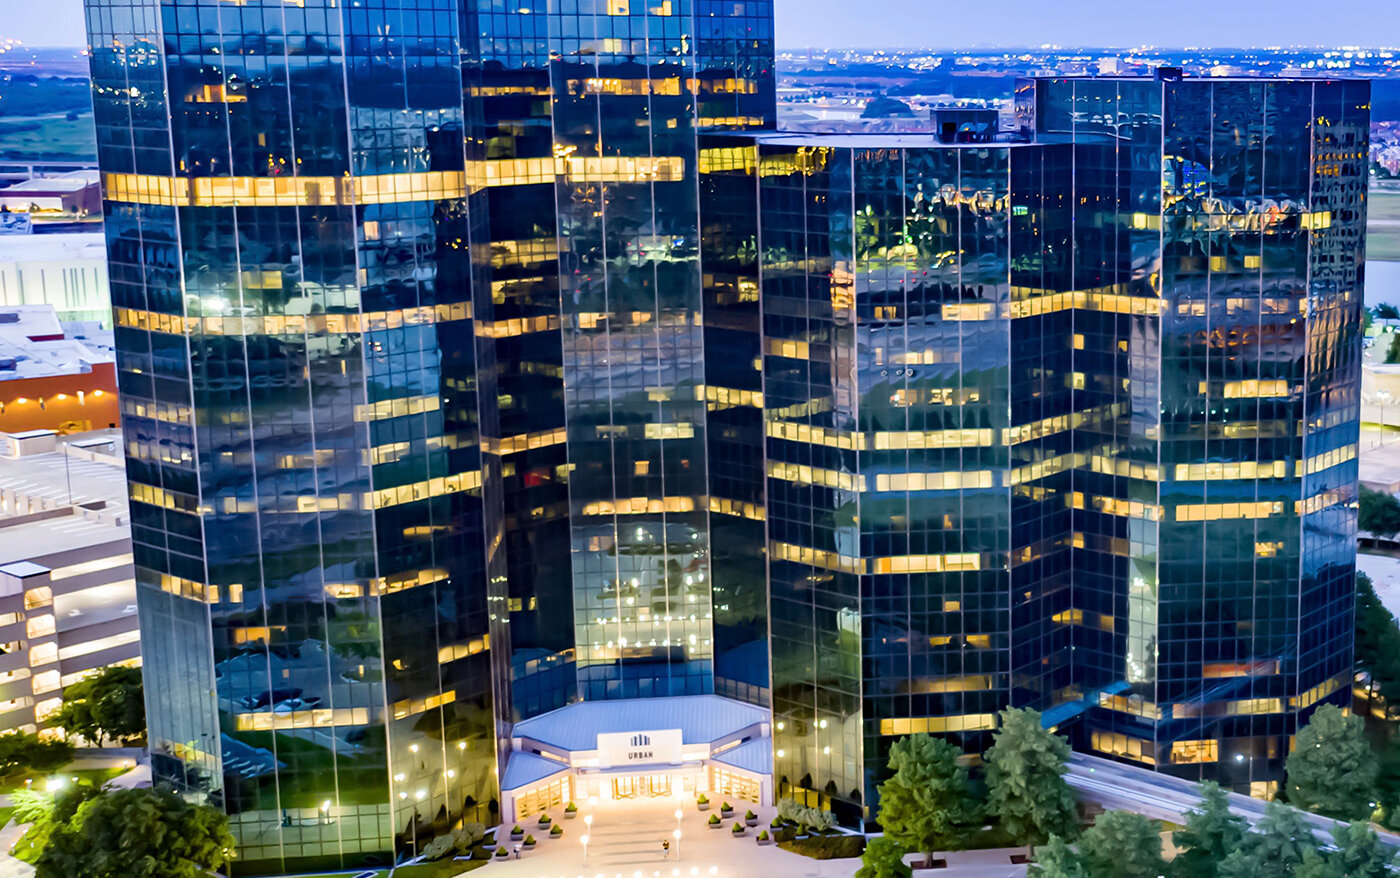 Parallel Capital Partners Completes $95 Million Refinance of Urban Towers High Rise in Irving, Texas